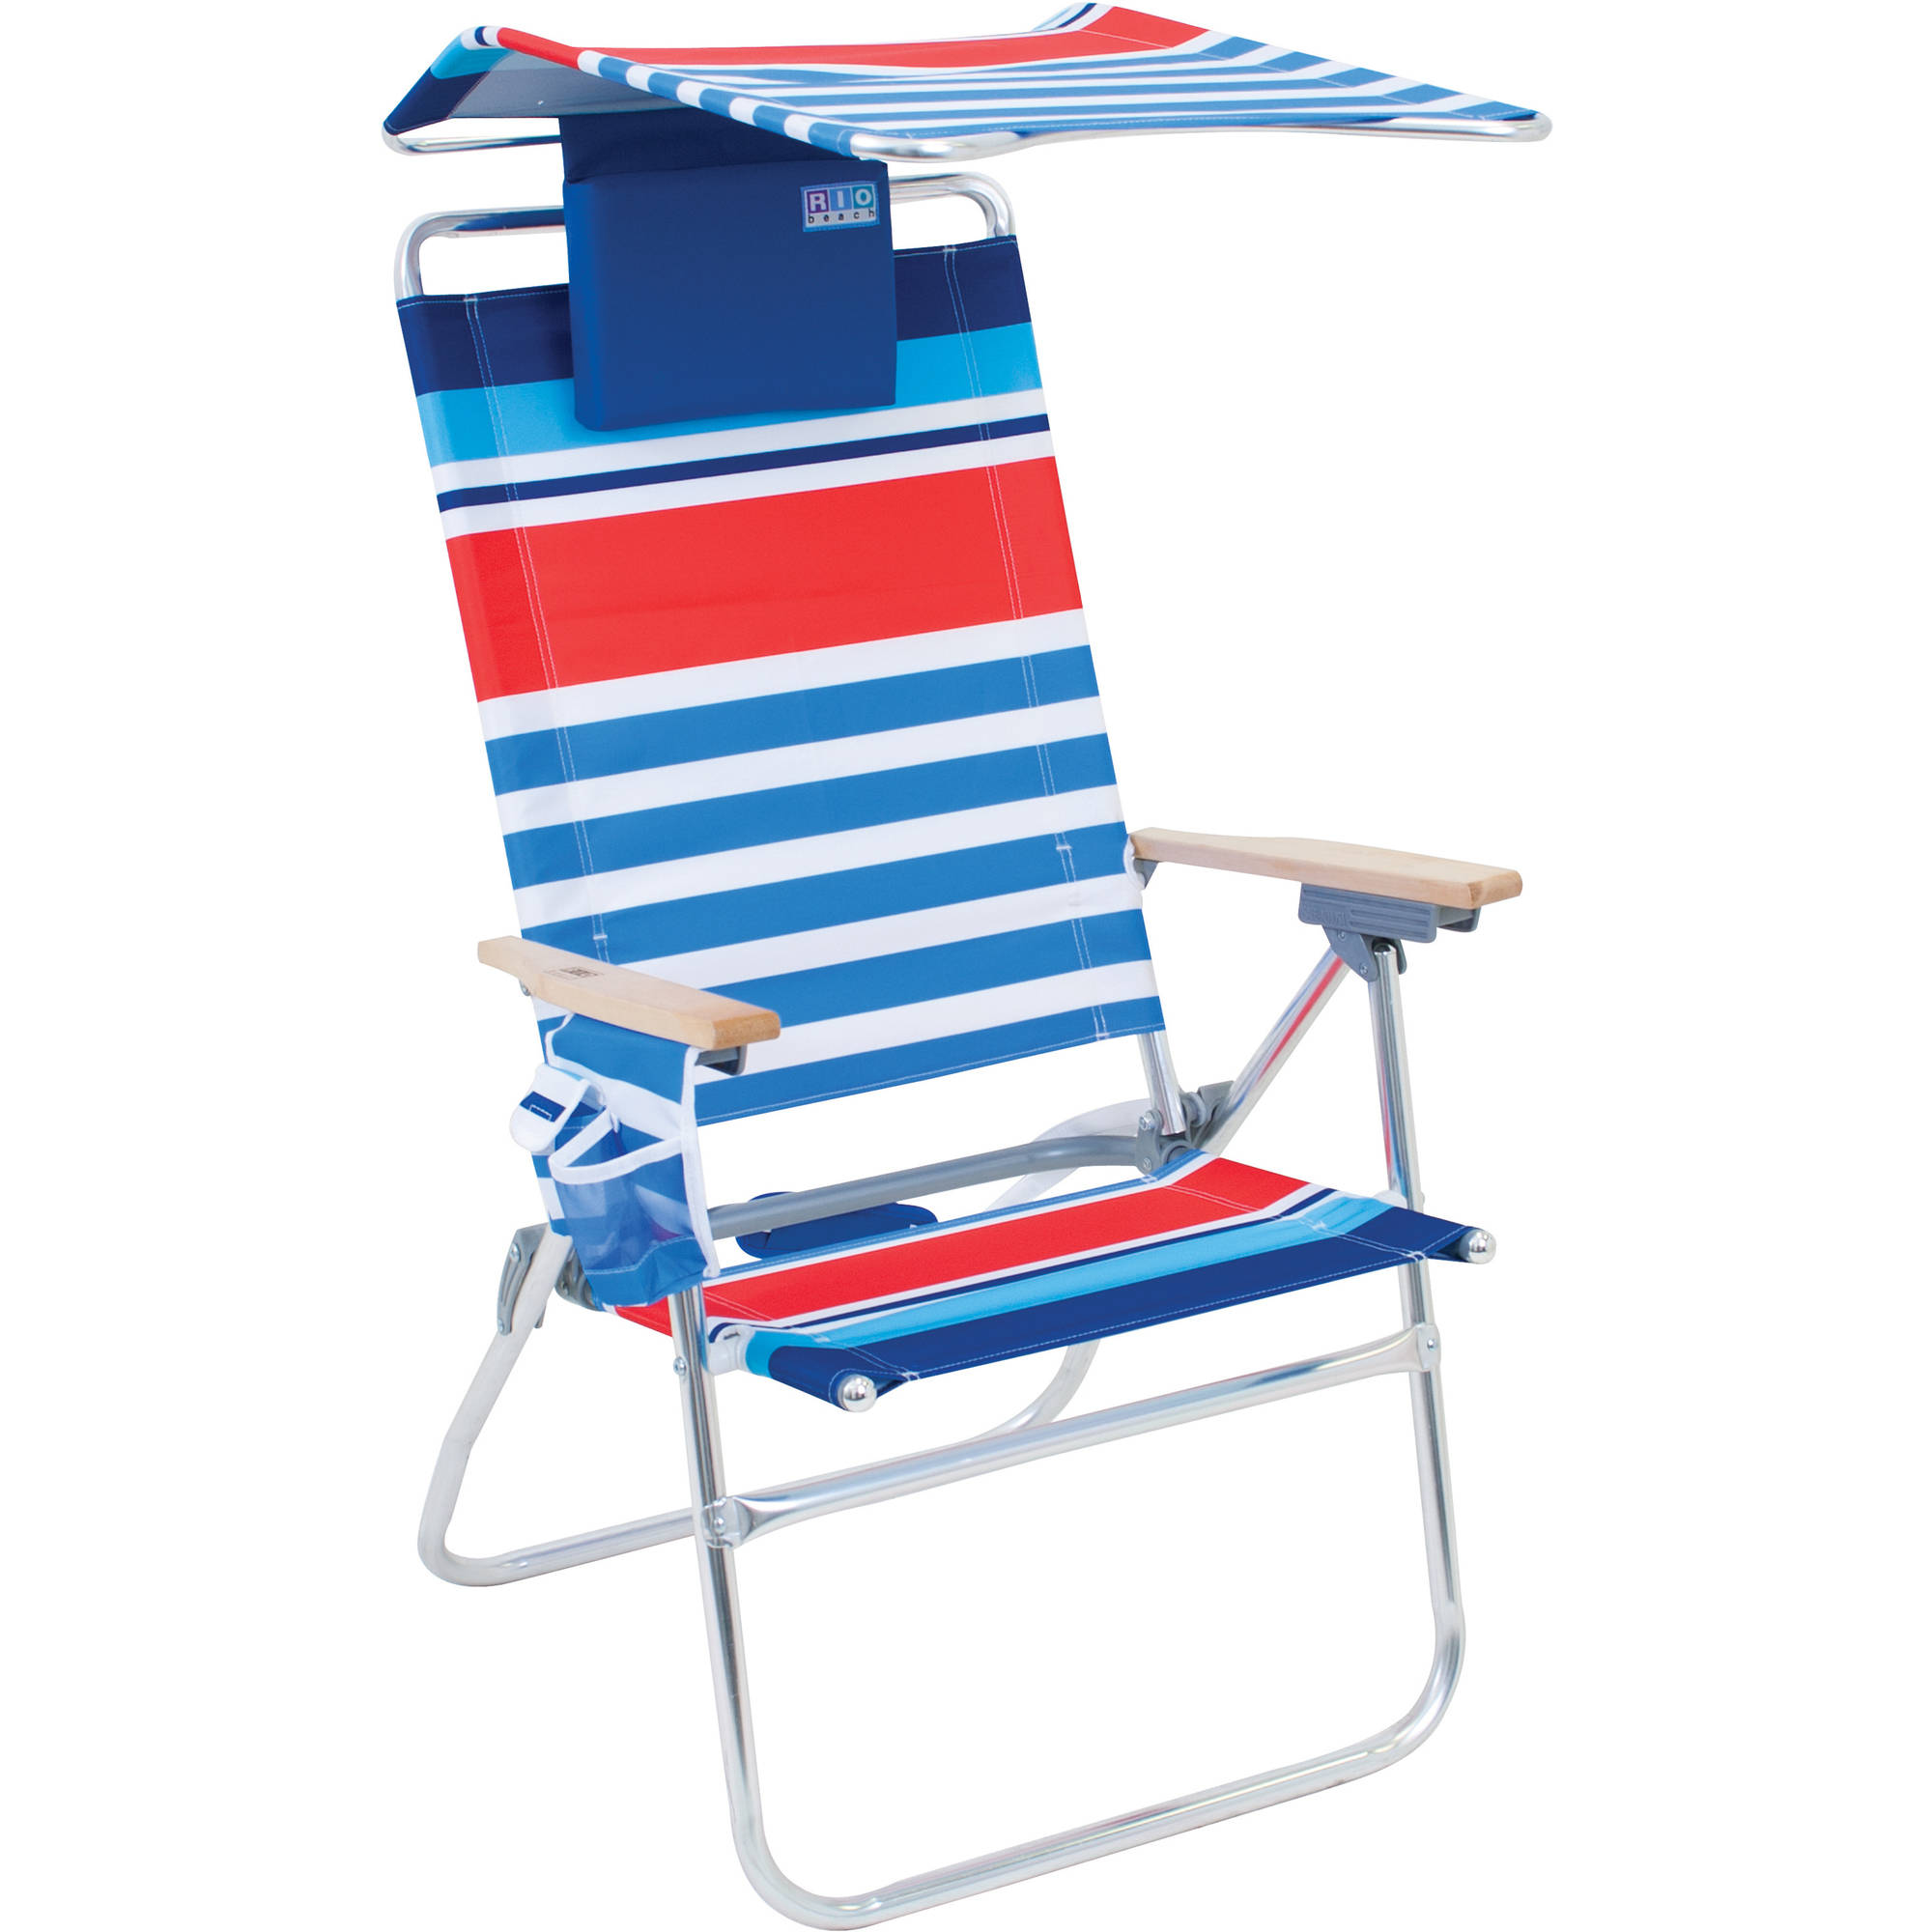 Rio HiBoy 7Position Beach Chair with Adjustable Canopy